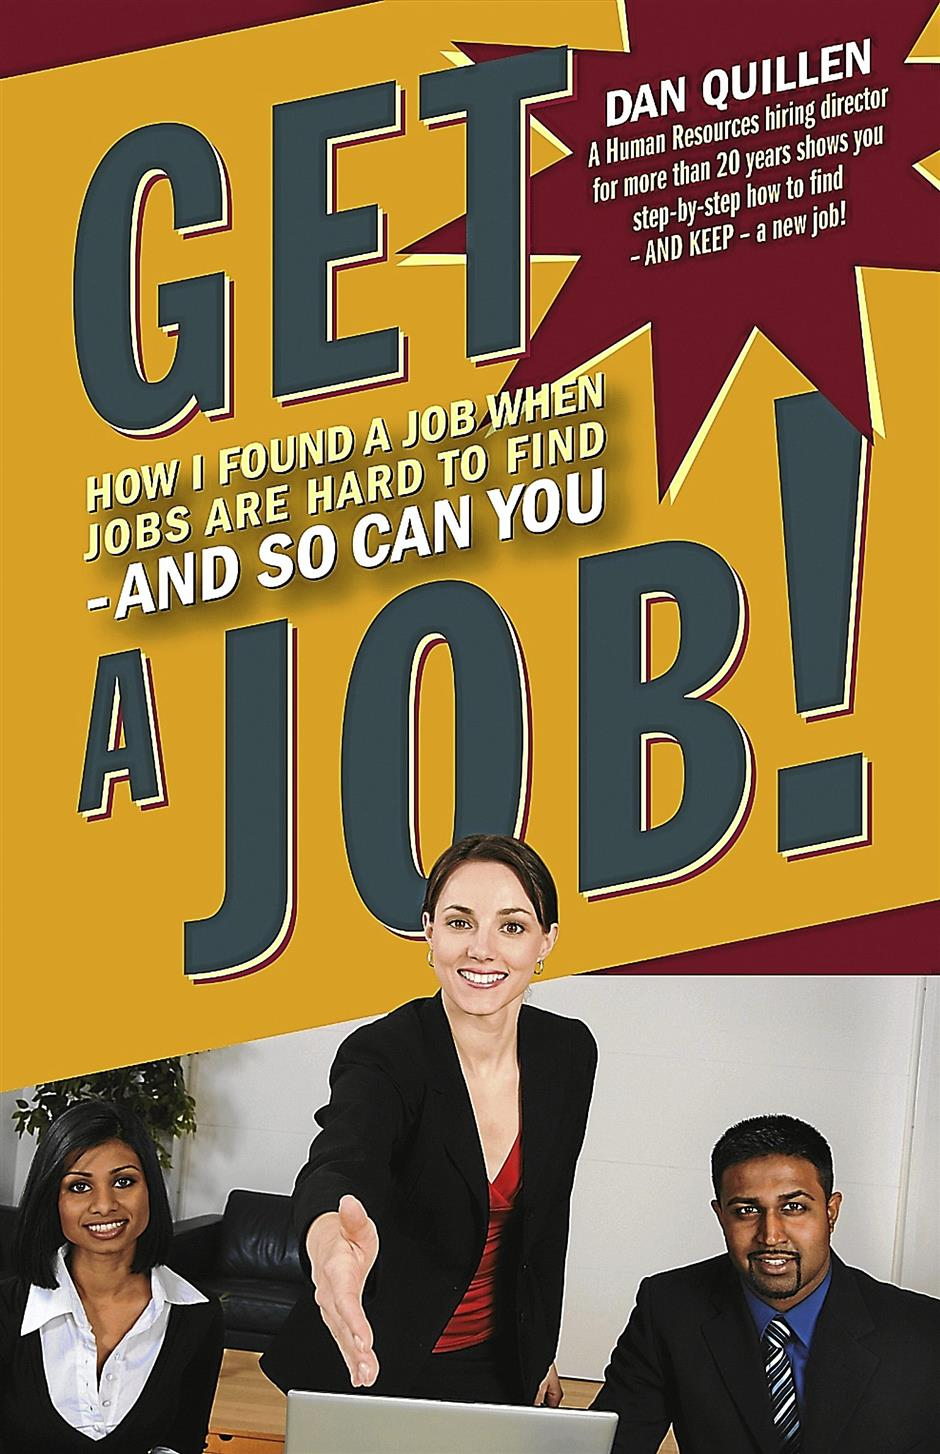 Get A Job: How I found a job when jobs are hard to findAuthor: Dan QuillenPublisher: Quillen